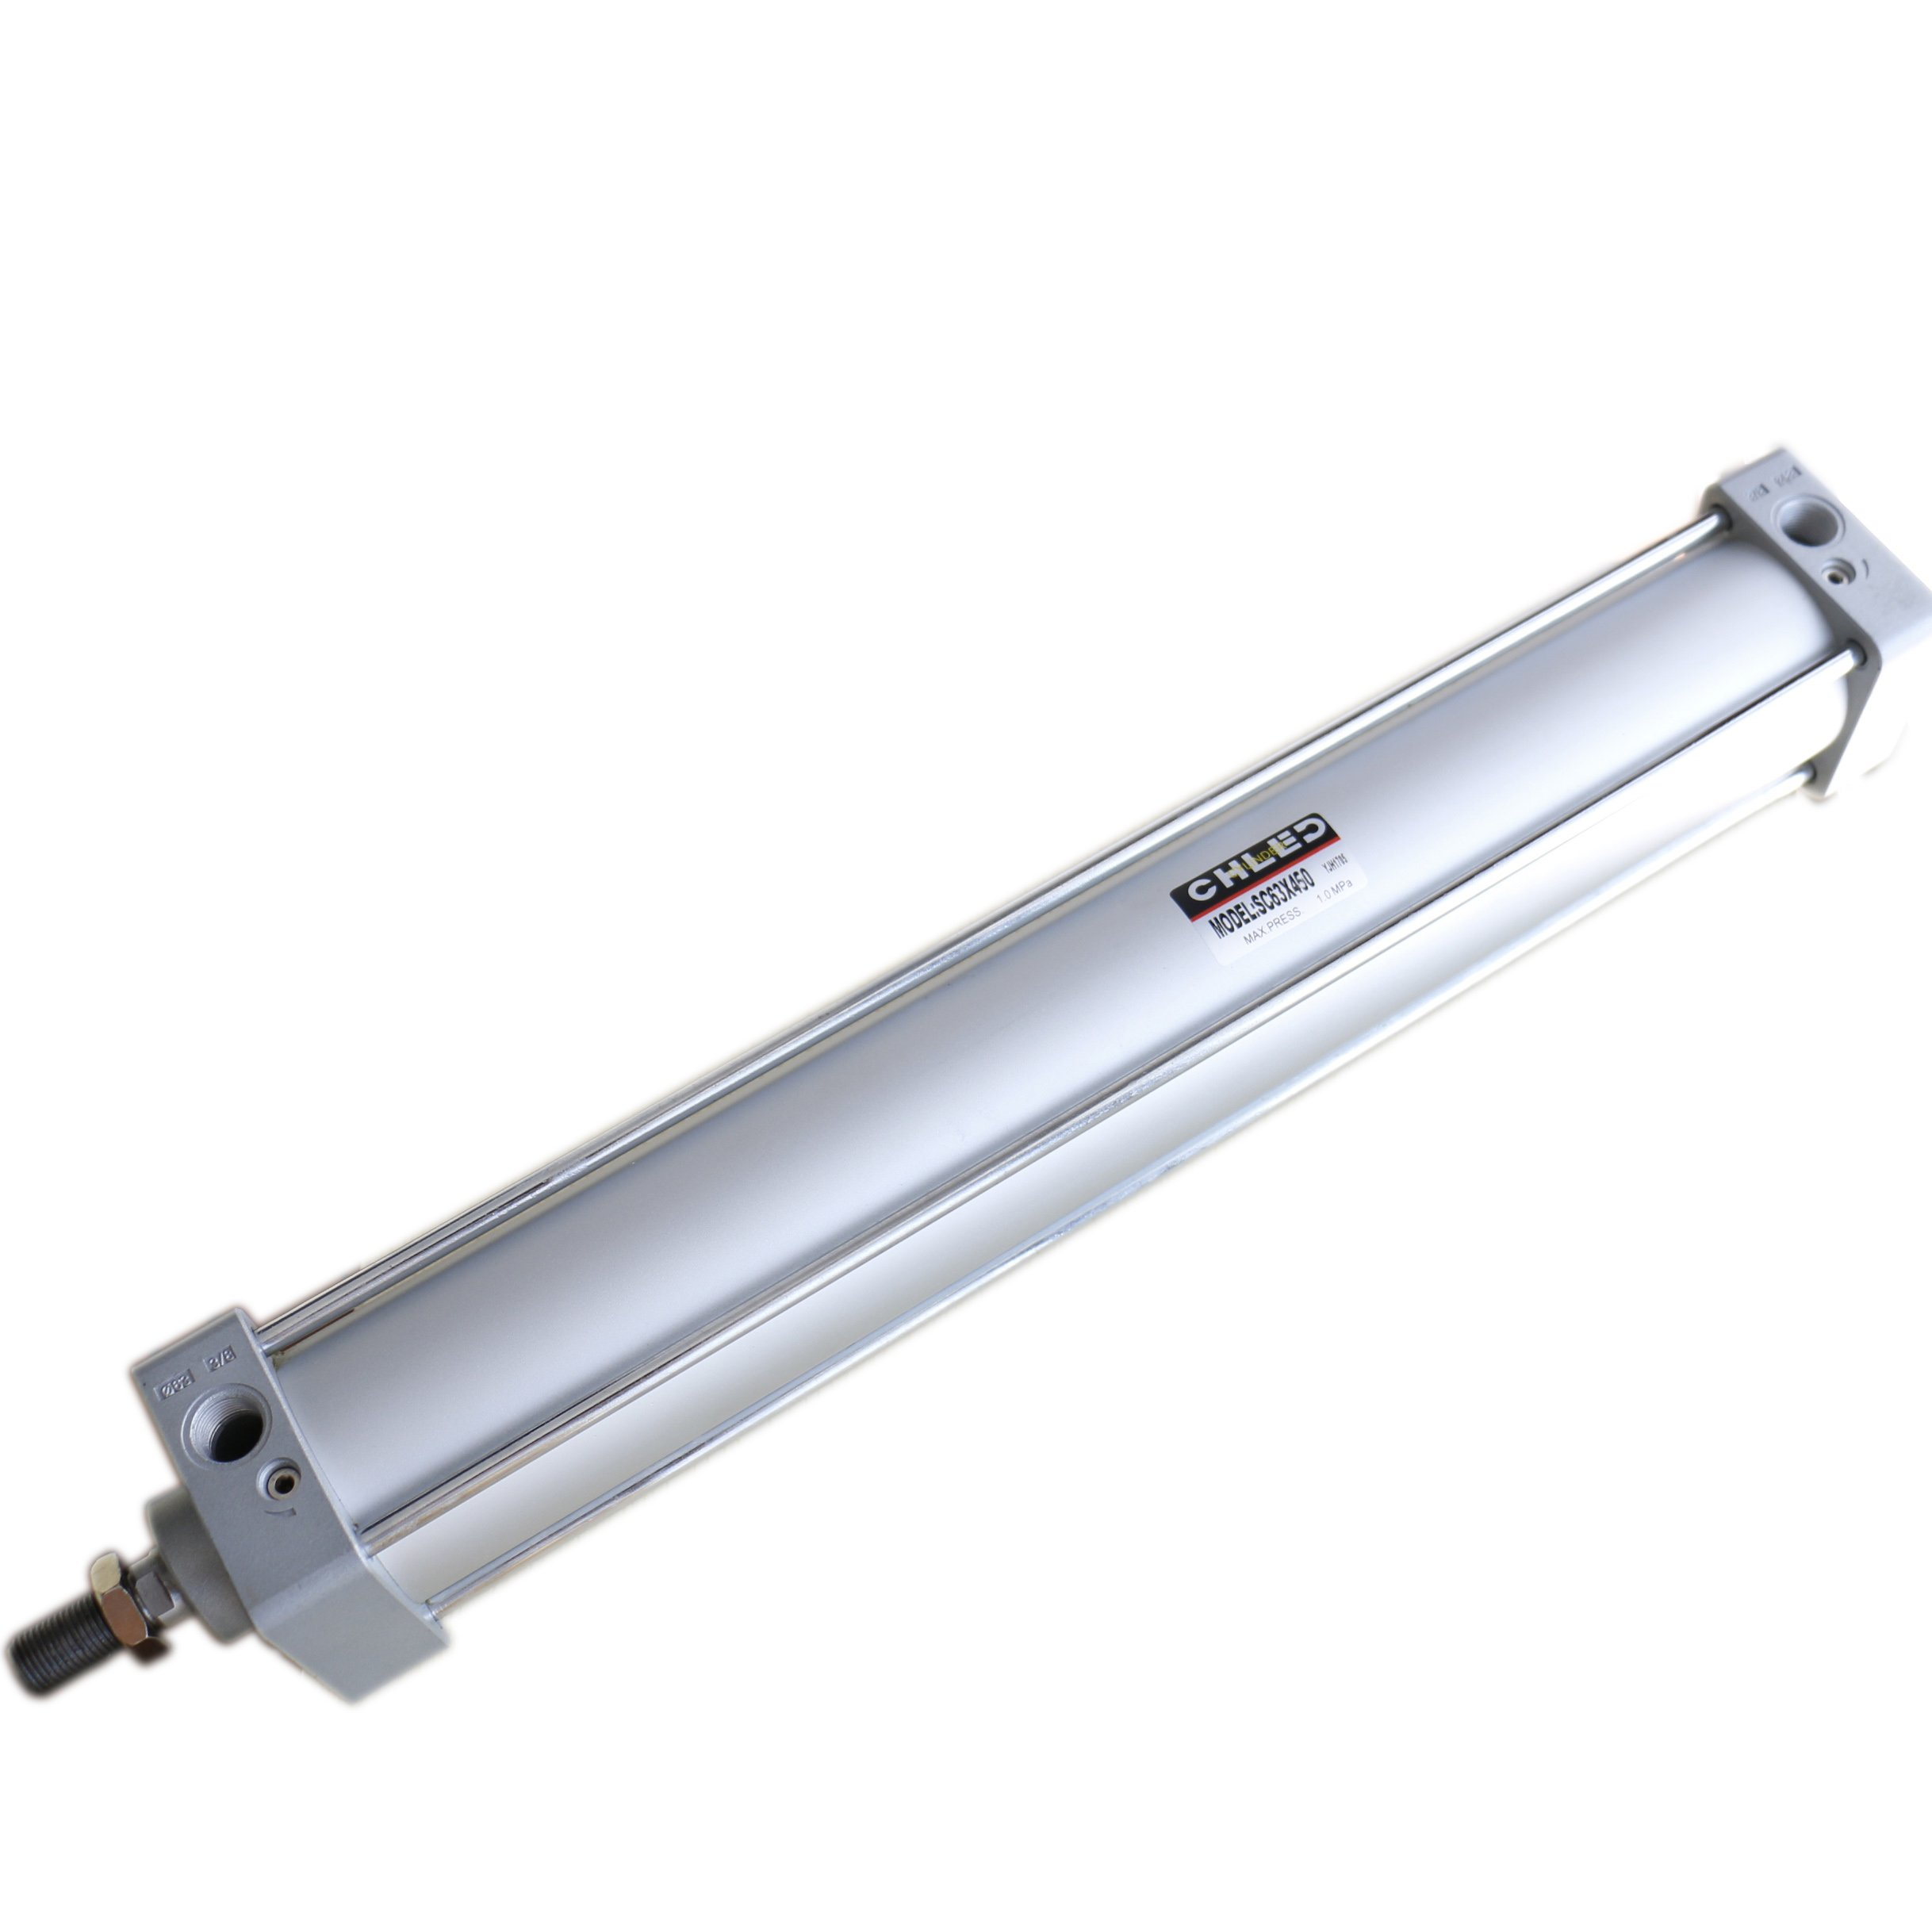 Baomain Pneumatic Air Cylinder SC 63 x 450 PT 3/8, Bore: 2 1/2 inch, Stroke: 18 inch, Screwed Piston Rod Dual Action